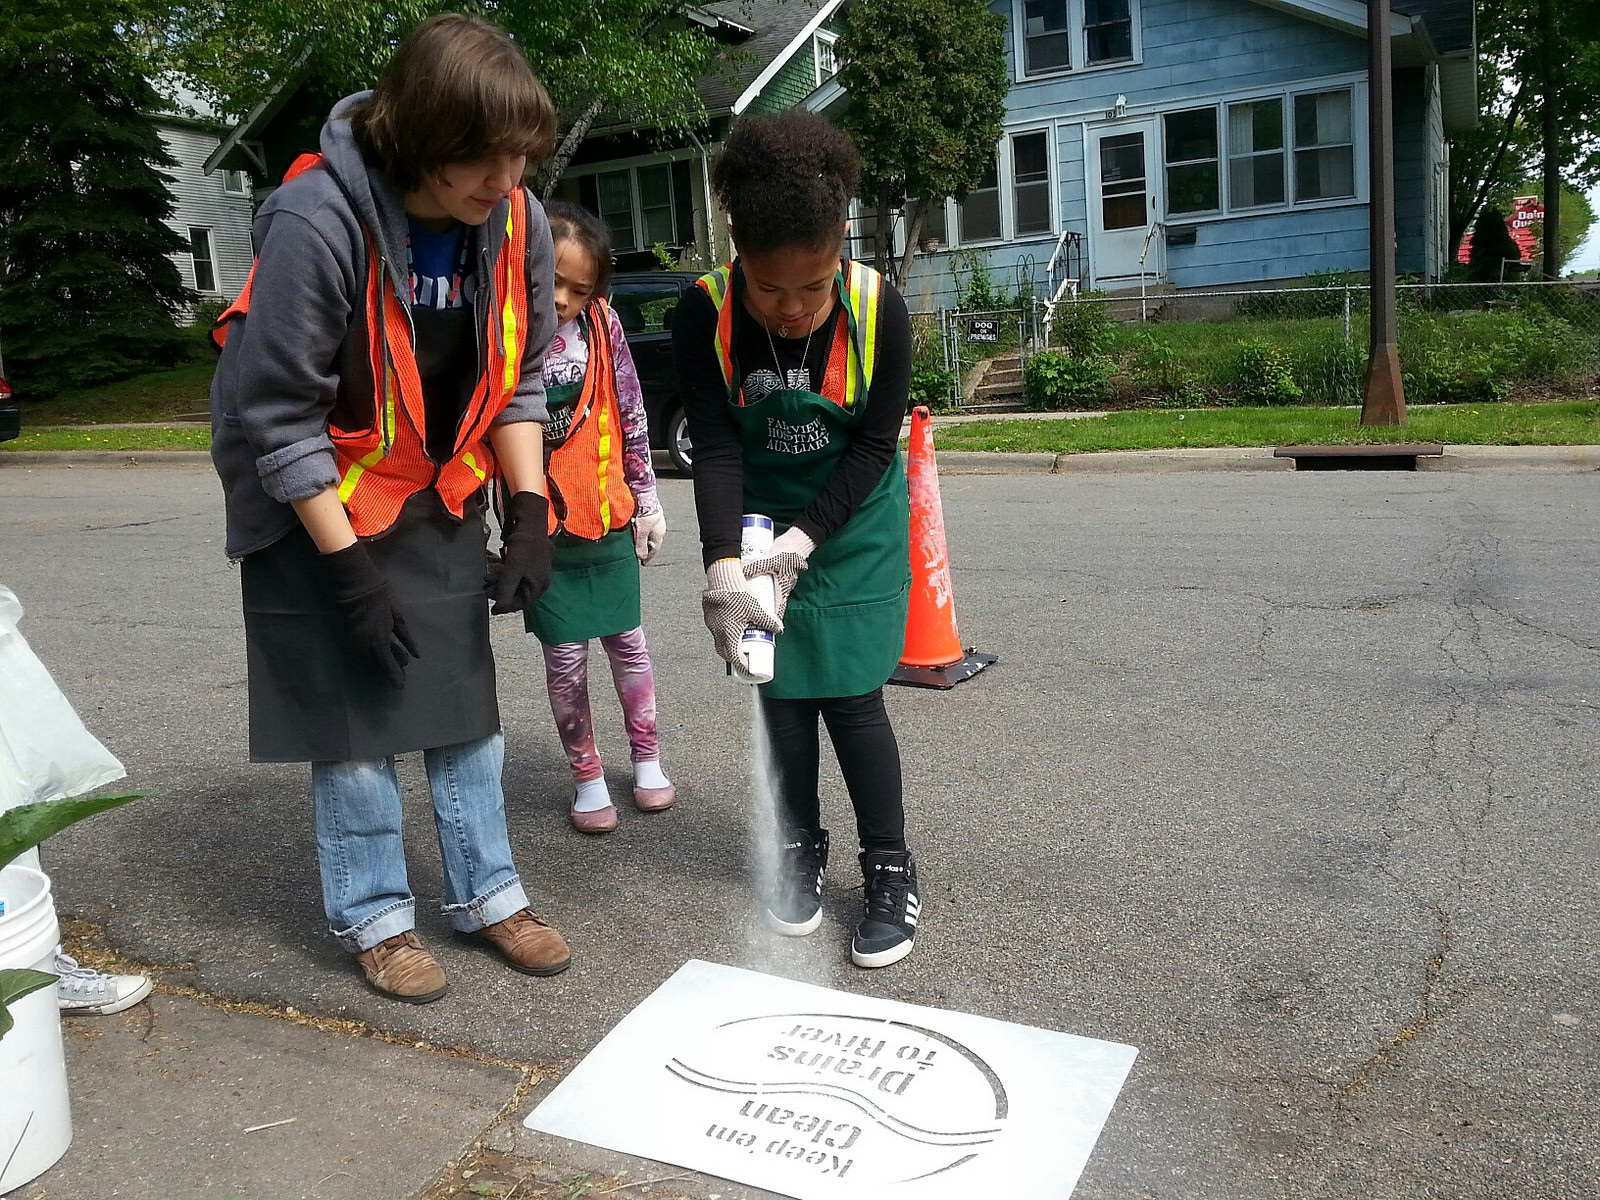 Let's spray paint storm drains for the Mighty Mississippi!